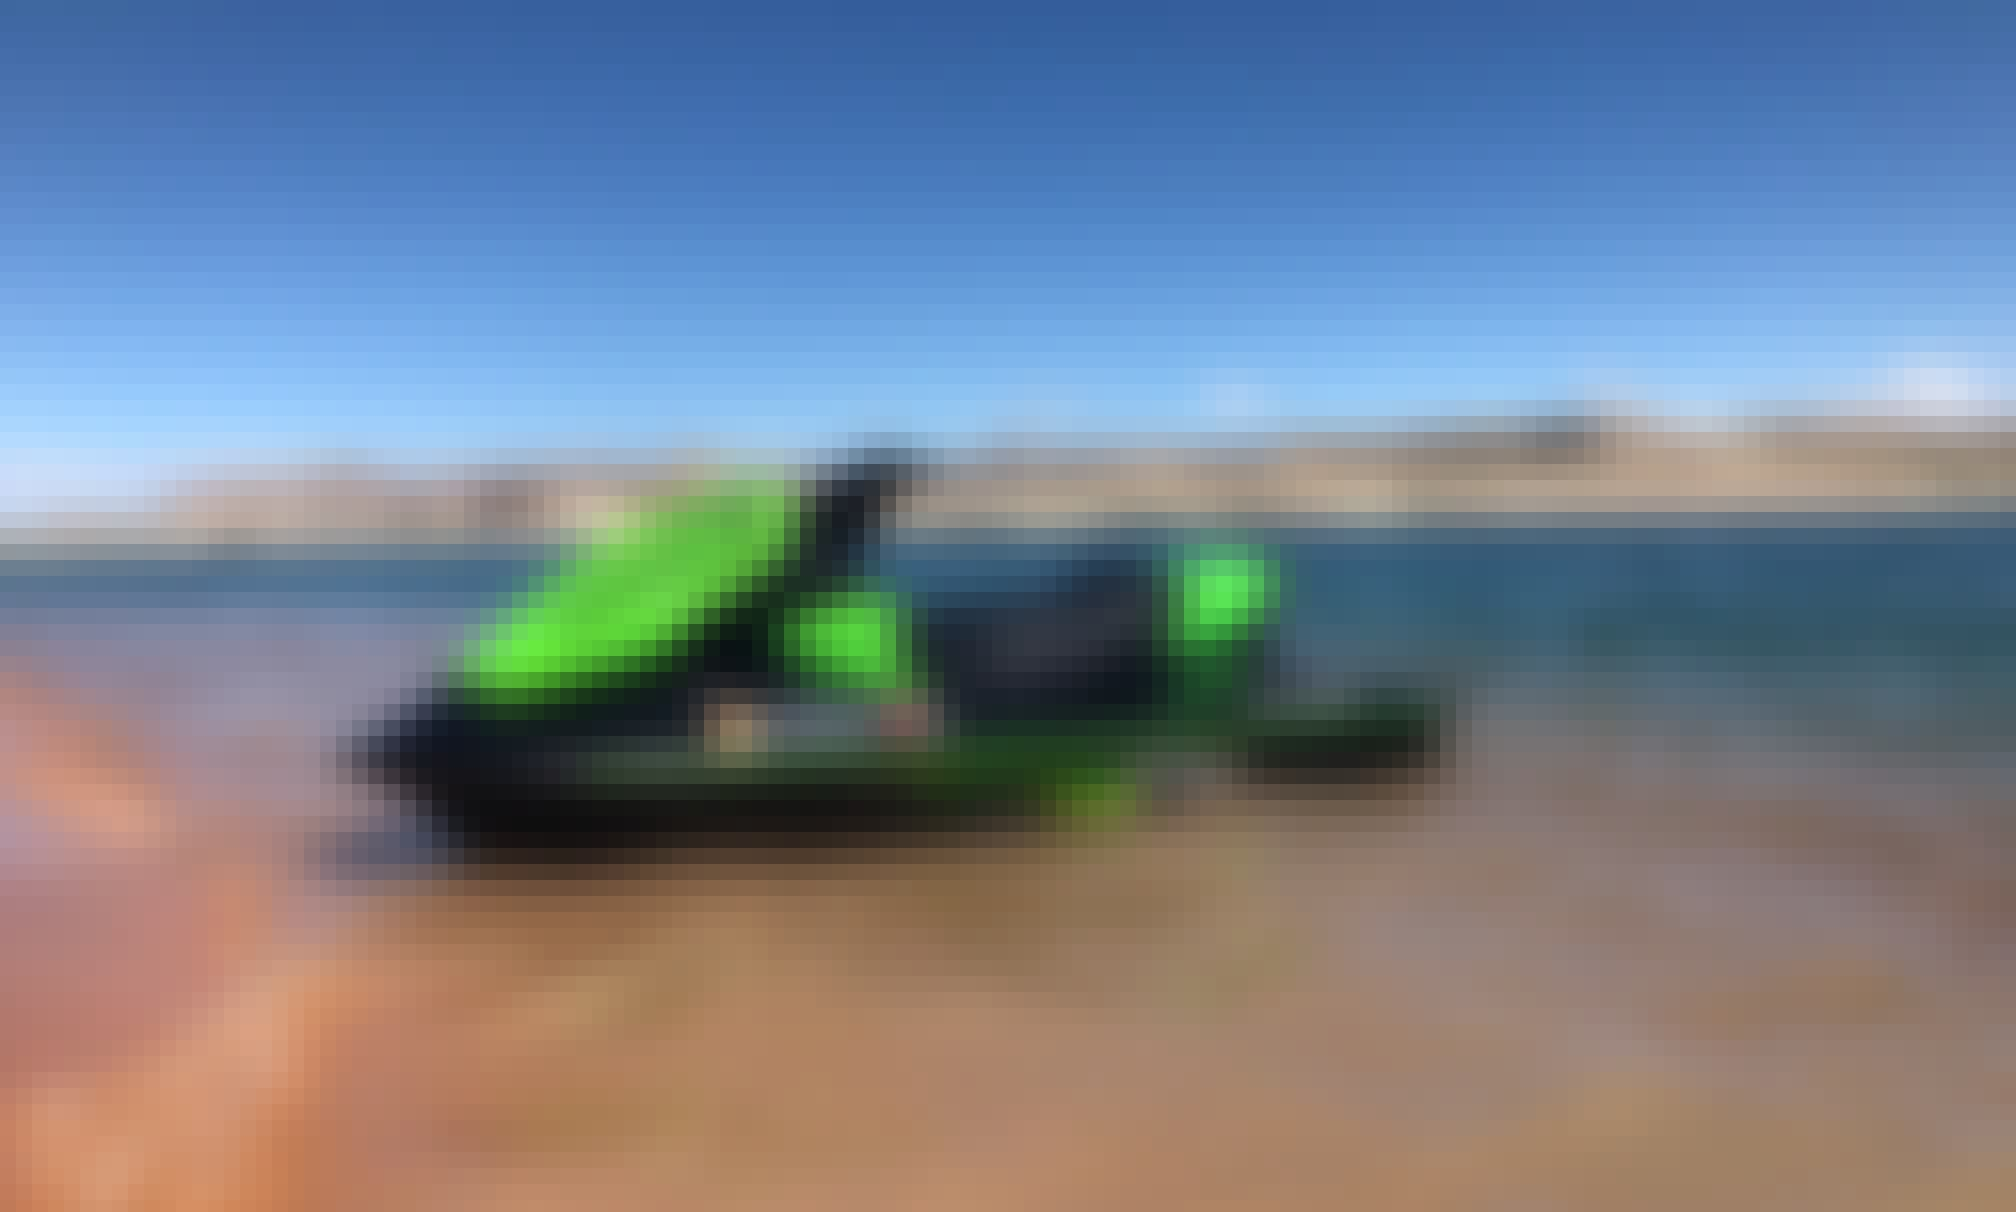 Enjoy Lake Powell with our 2019 Kawasaki Jet Ski STX-15 160 HP 3 Person - $235 a day with multi day discounts